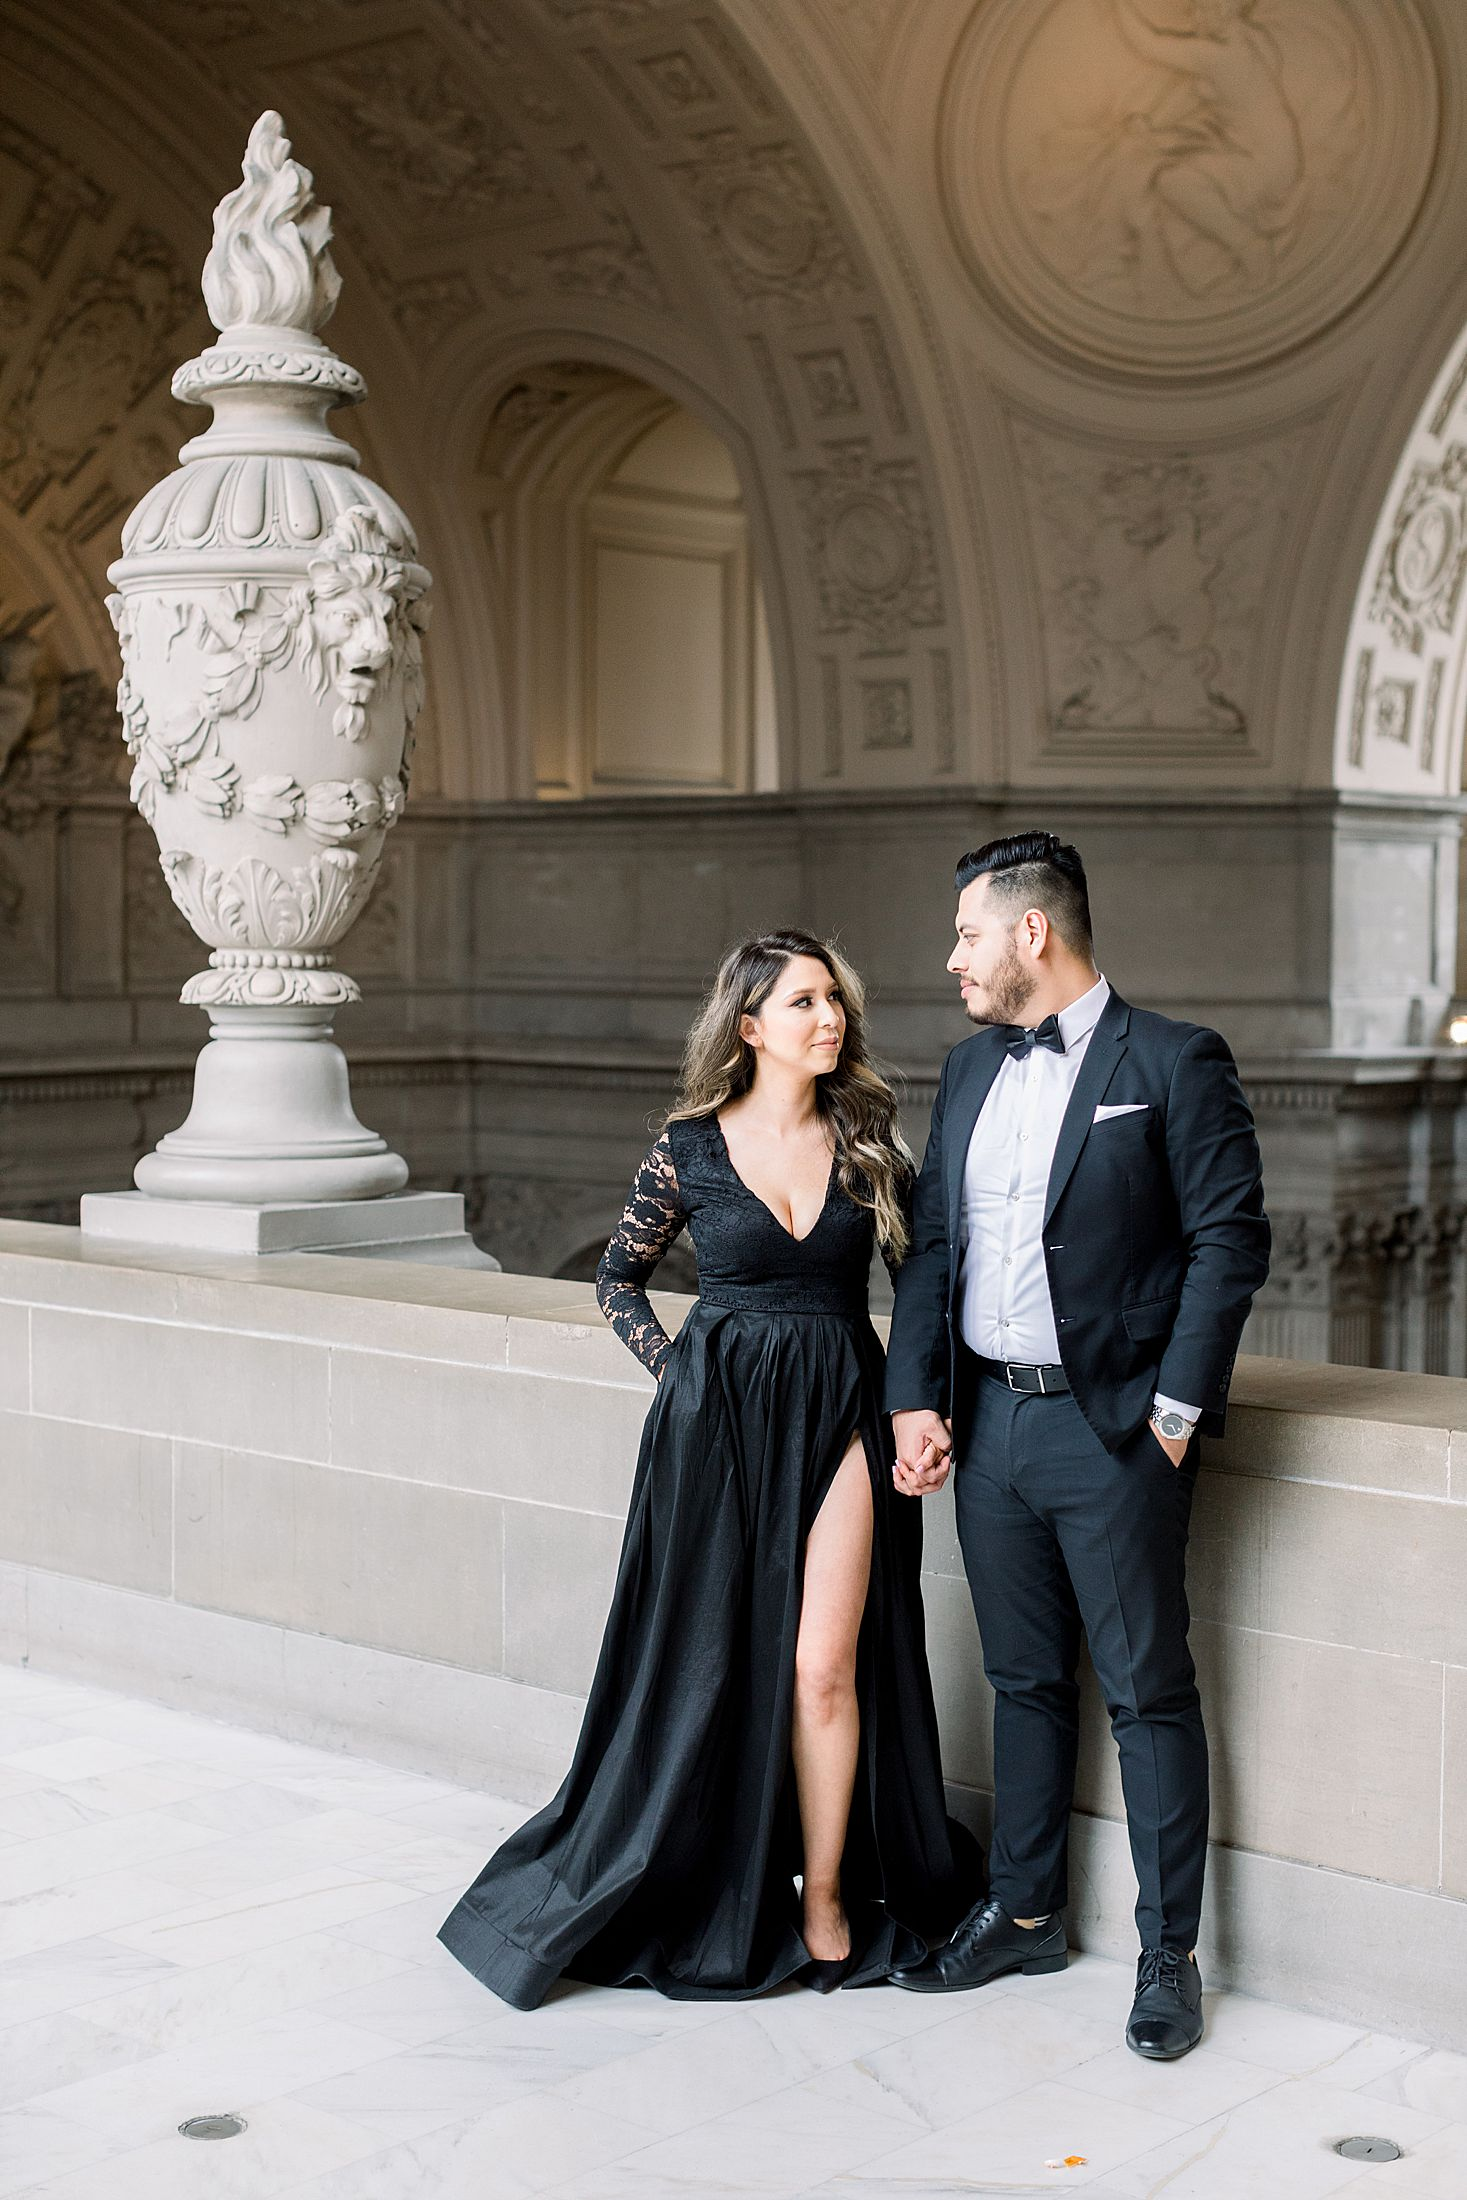 SF City Hall Black Tie Engagement and Palace of Fine Arts Engagement - Ashley Baumgartner - Esmeralda and Jesus - SF Wedding Photographer_0001.jpg